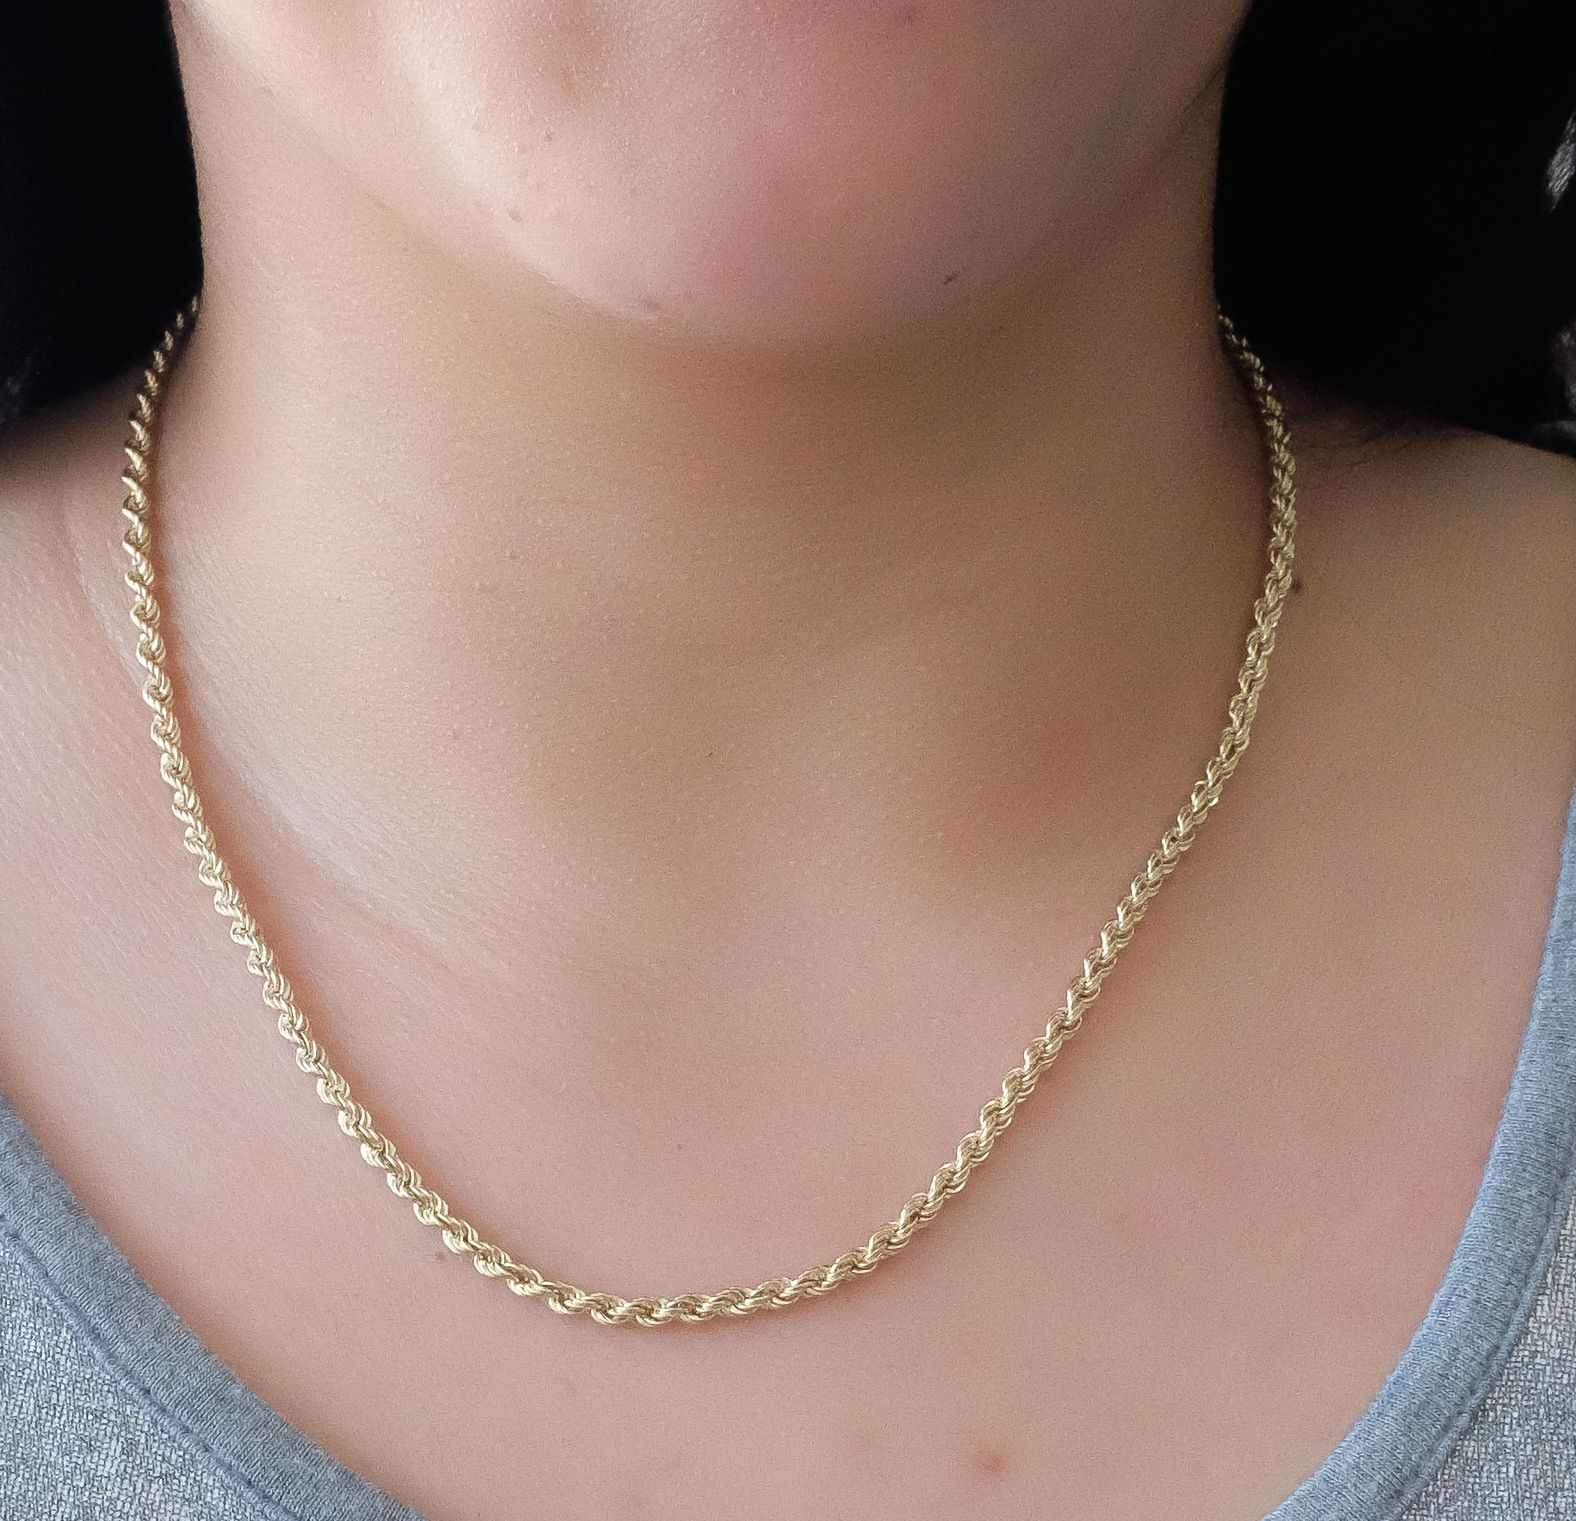 16 Inches Long Rope Chain 14Kt Gold Rope Chain